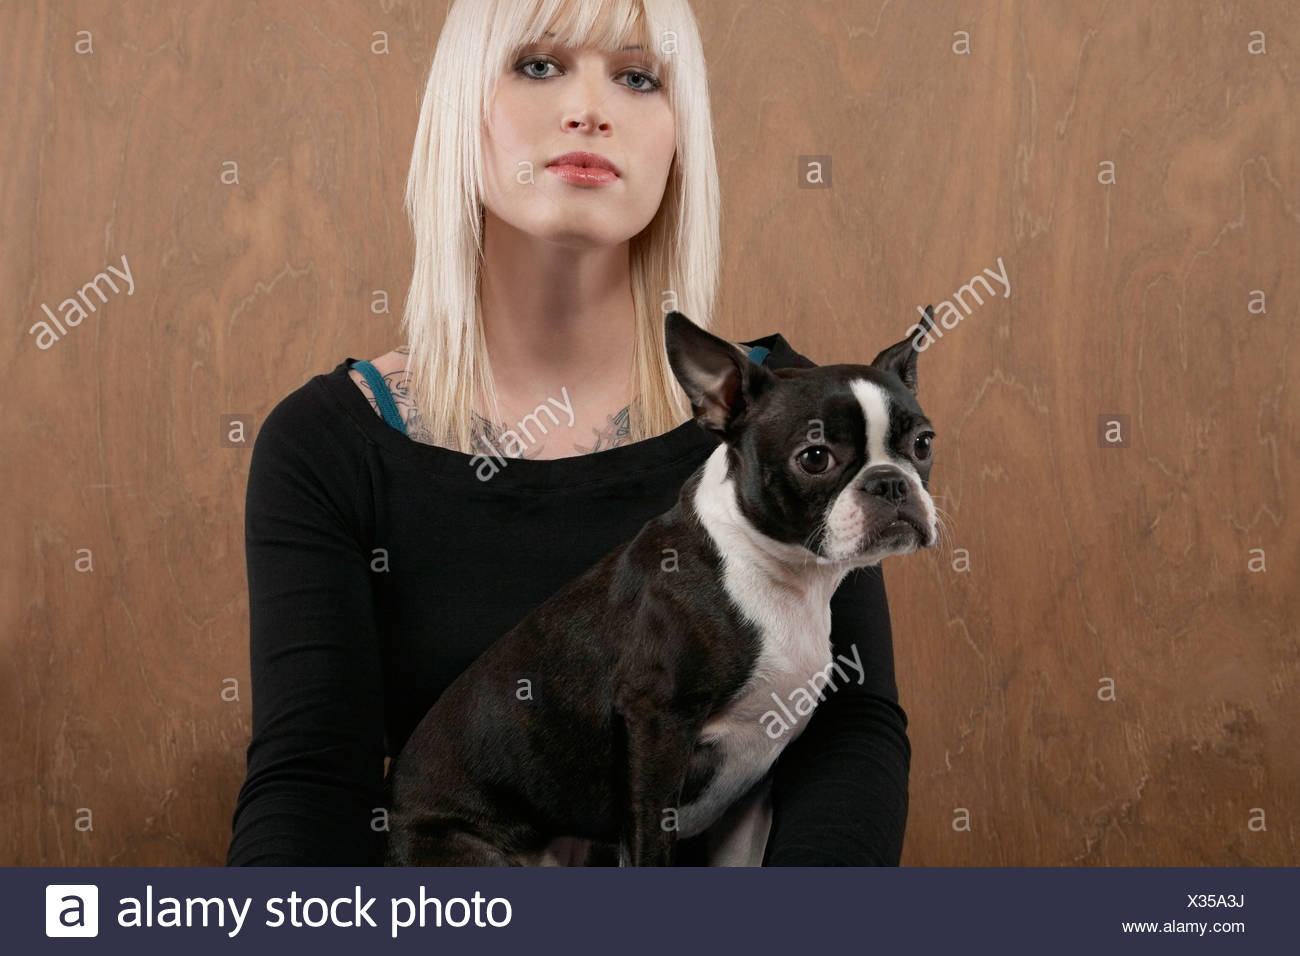 85e4ee0b750b Blonde Woman With Dog Stock Photos & Blonde Woman With Dog Stock ...